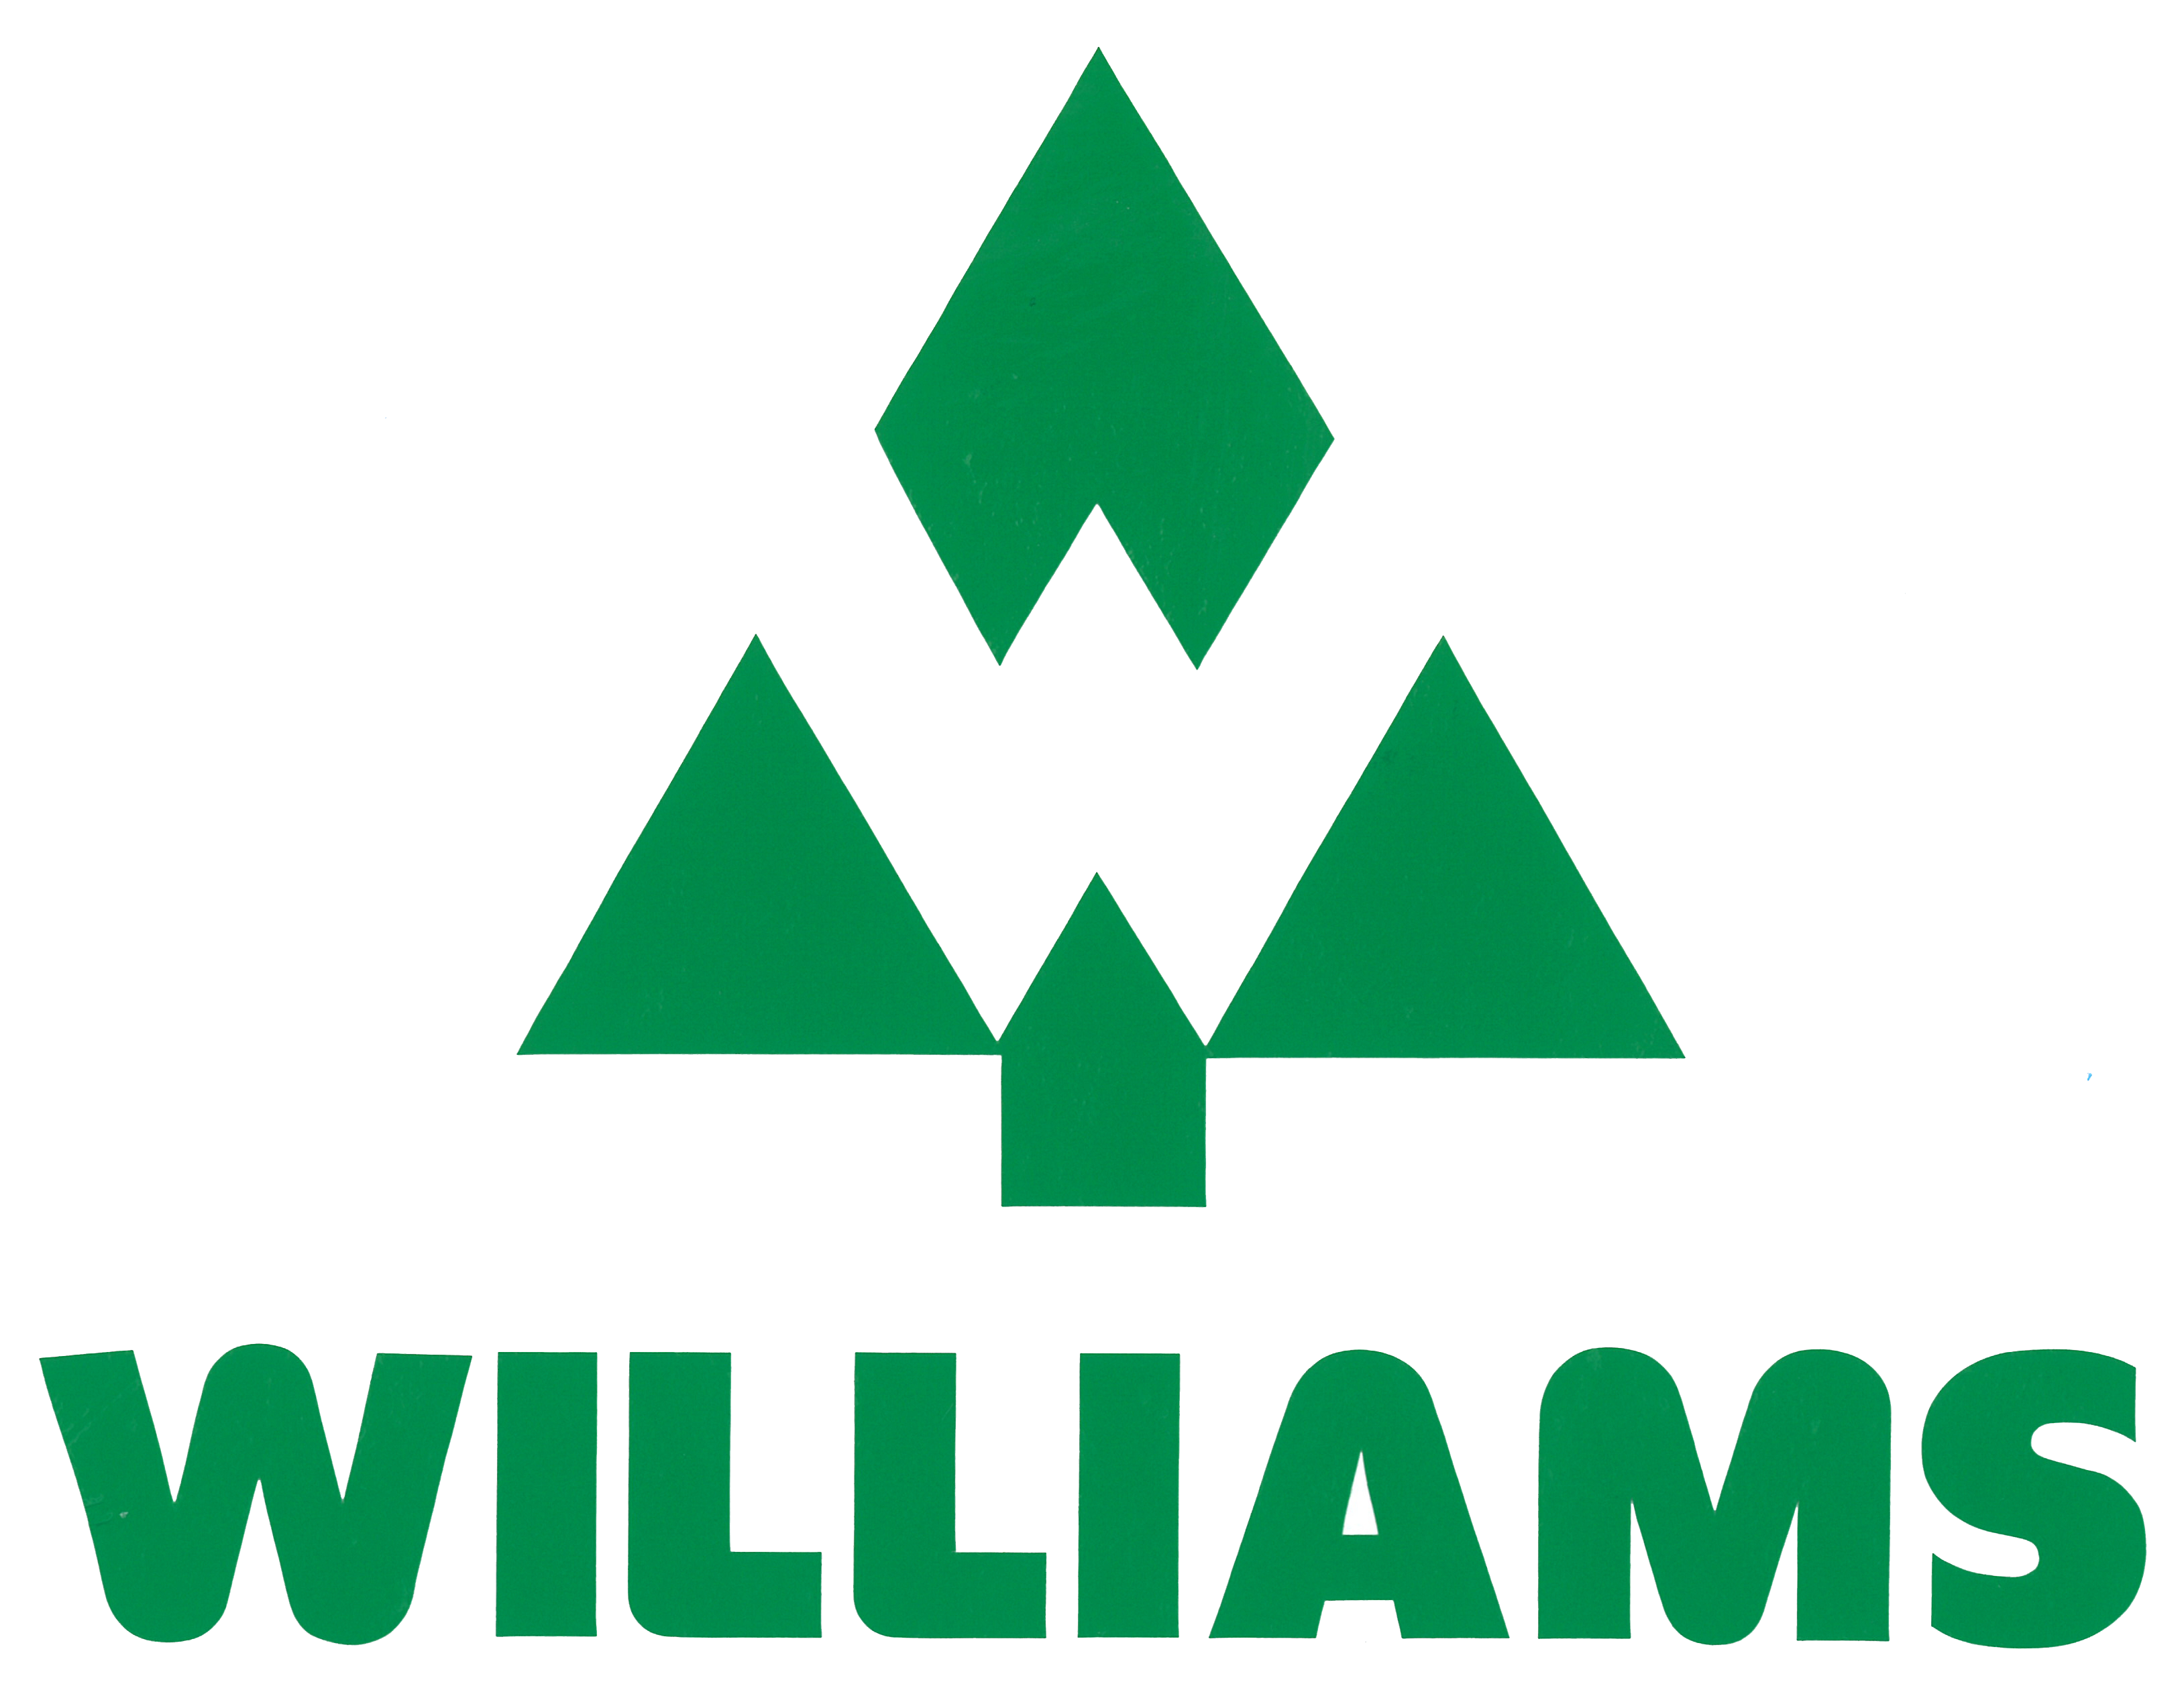 Williams Brothers (2013) Limited